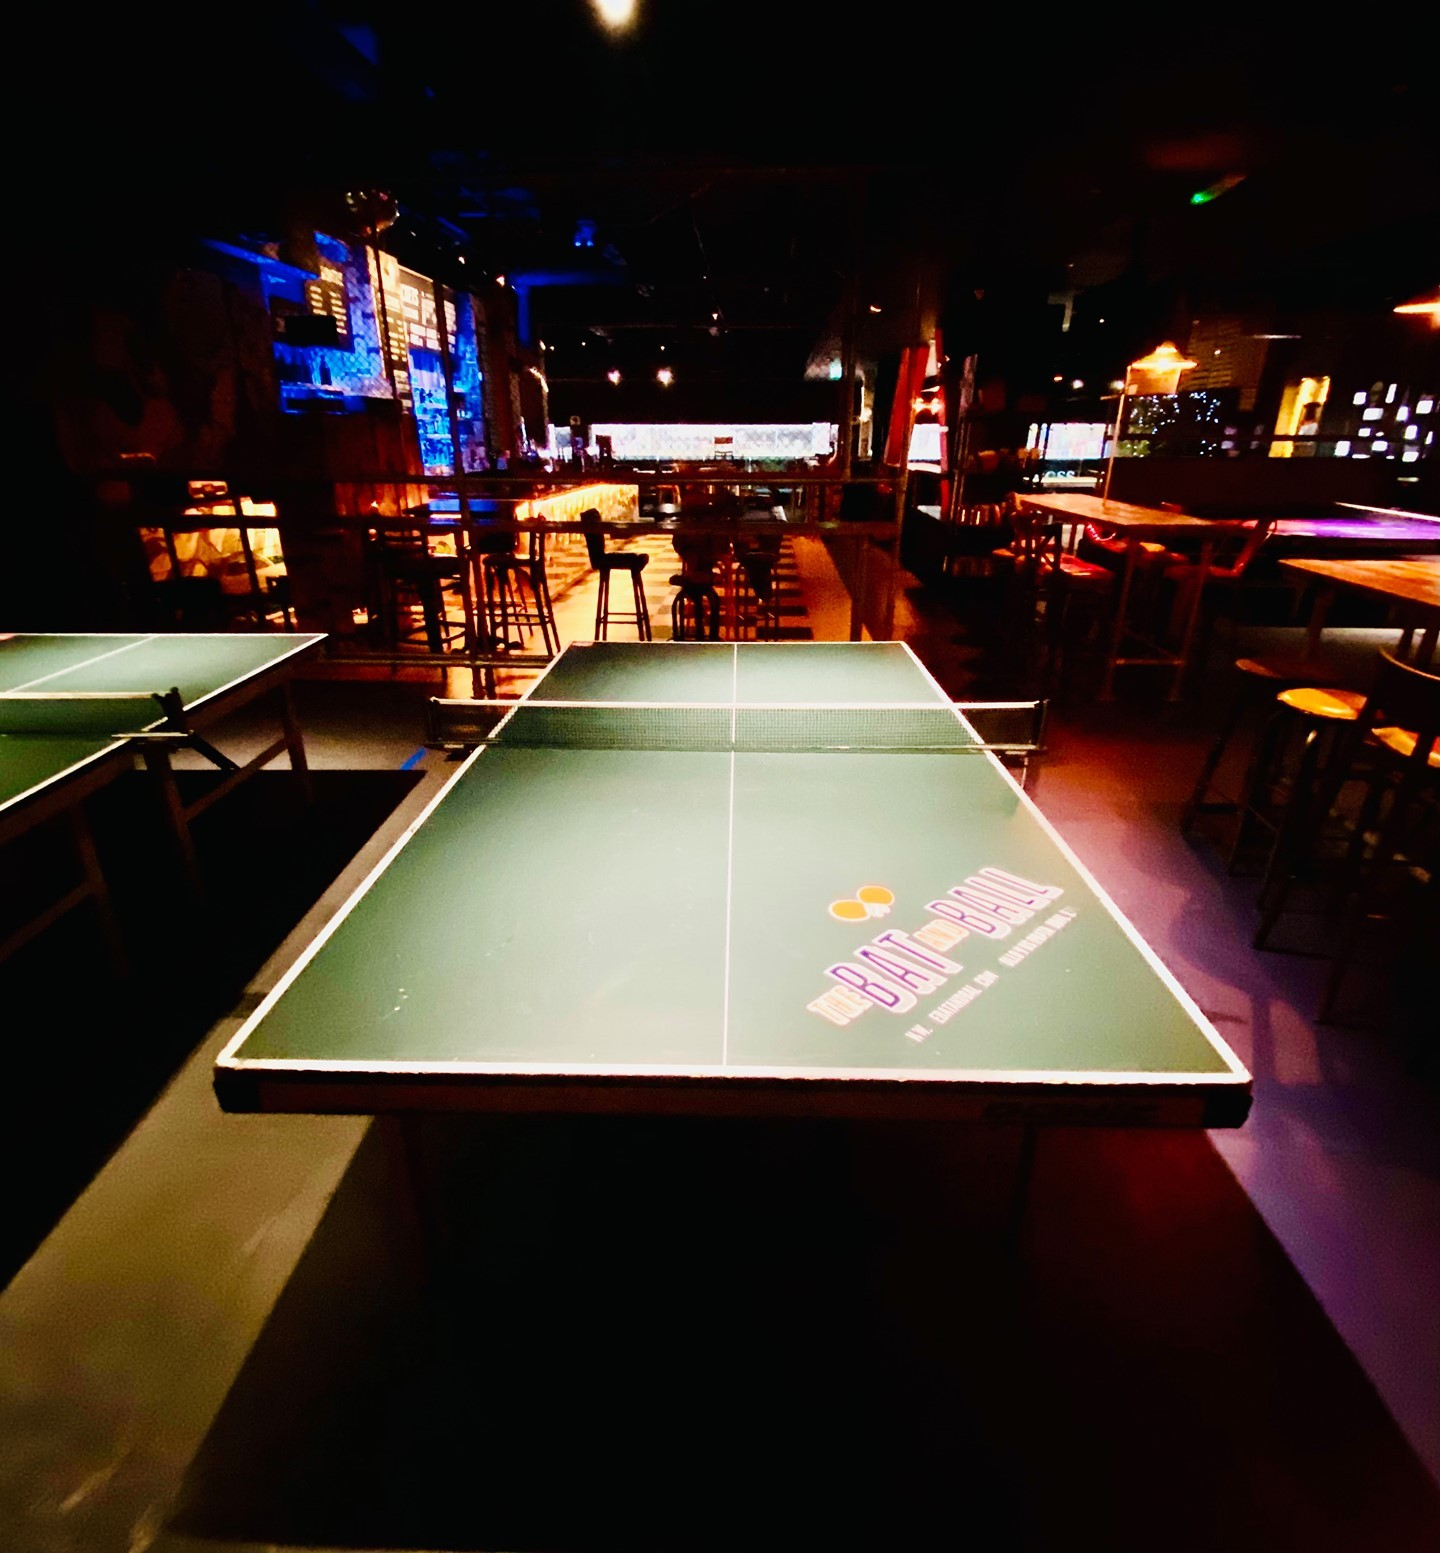 Book one of these for you and up to 6 mates any weekday evening to take advantage of our off peak prices! Who are you bringing along to smash?  #pingpong #beerpong #euro2020 #beer